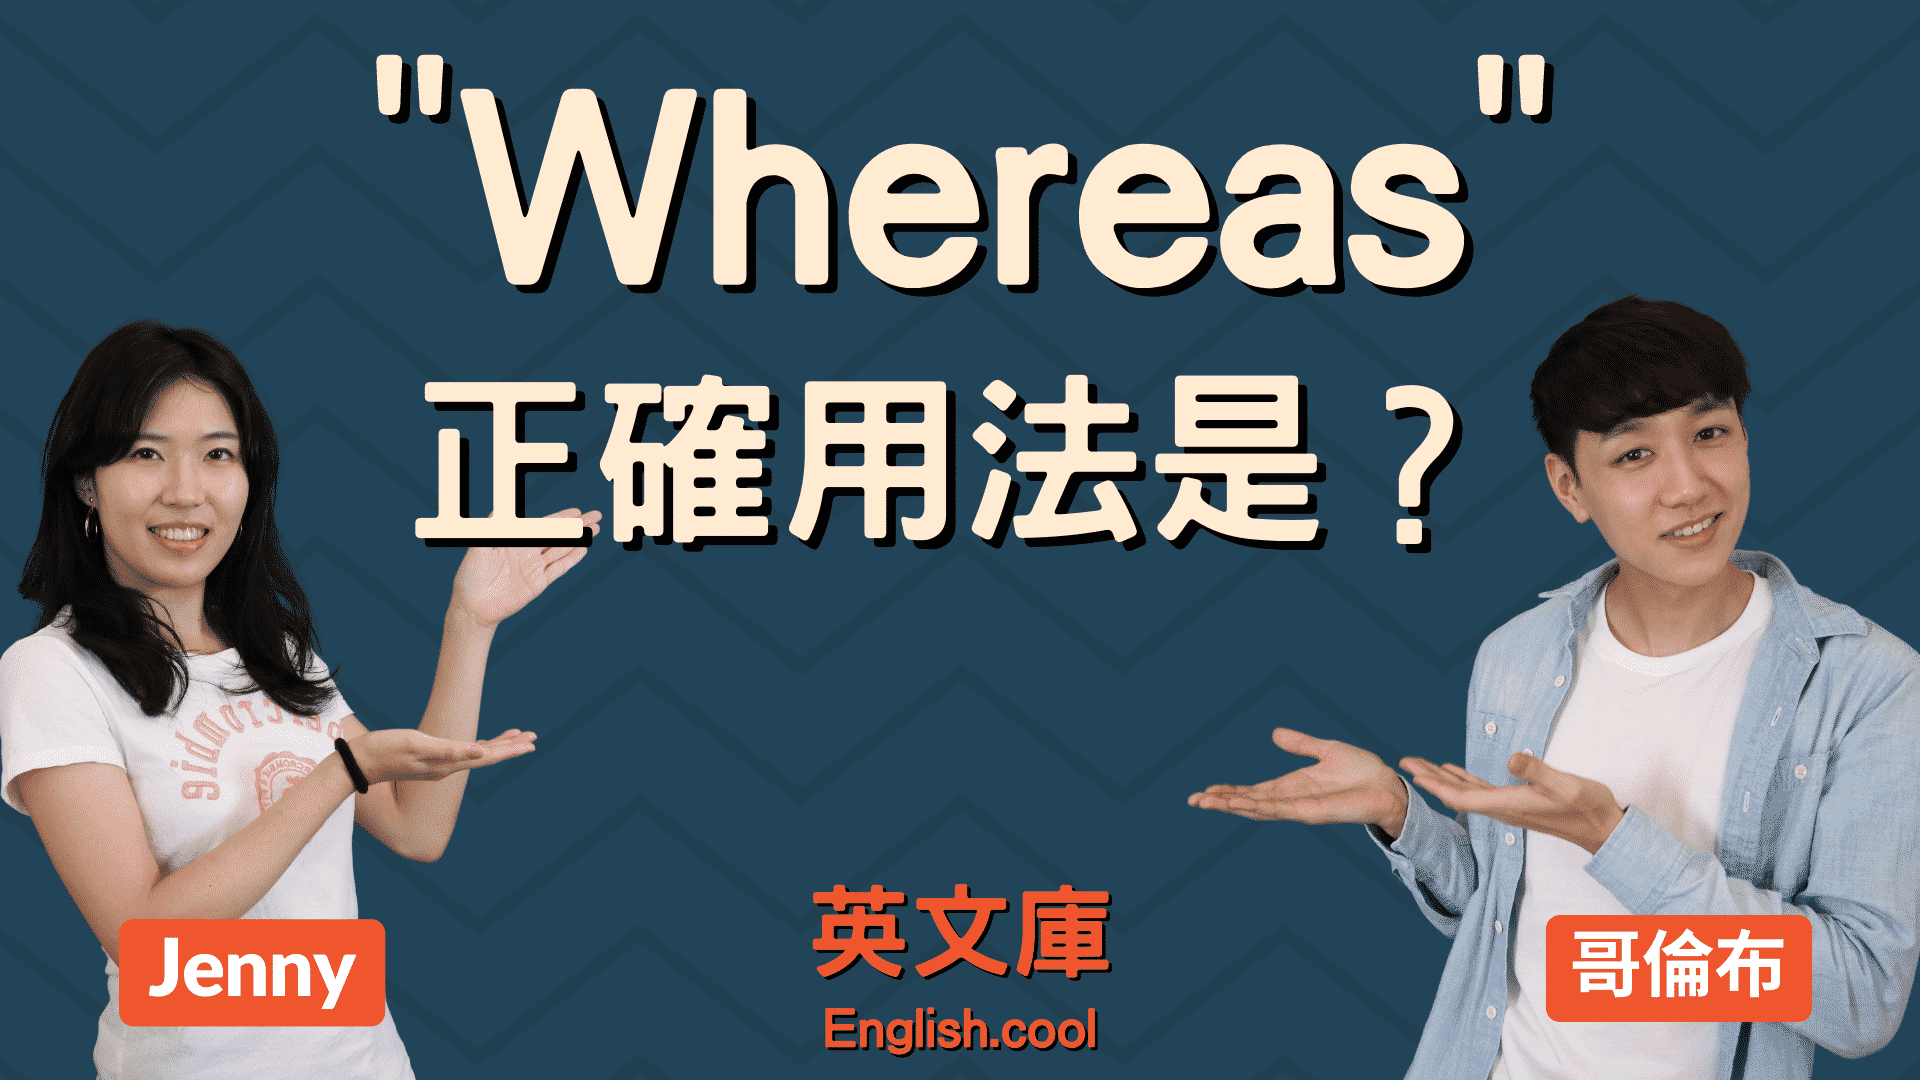 You are currently viewing Whereas 跟 While 的正確用法是?來看例句搞懂 「而…」的英文!